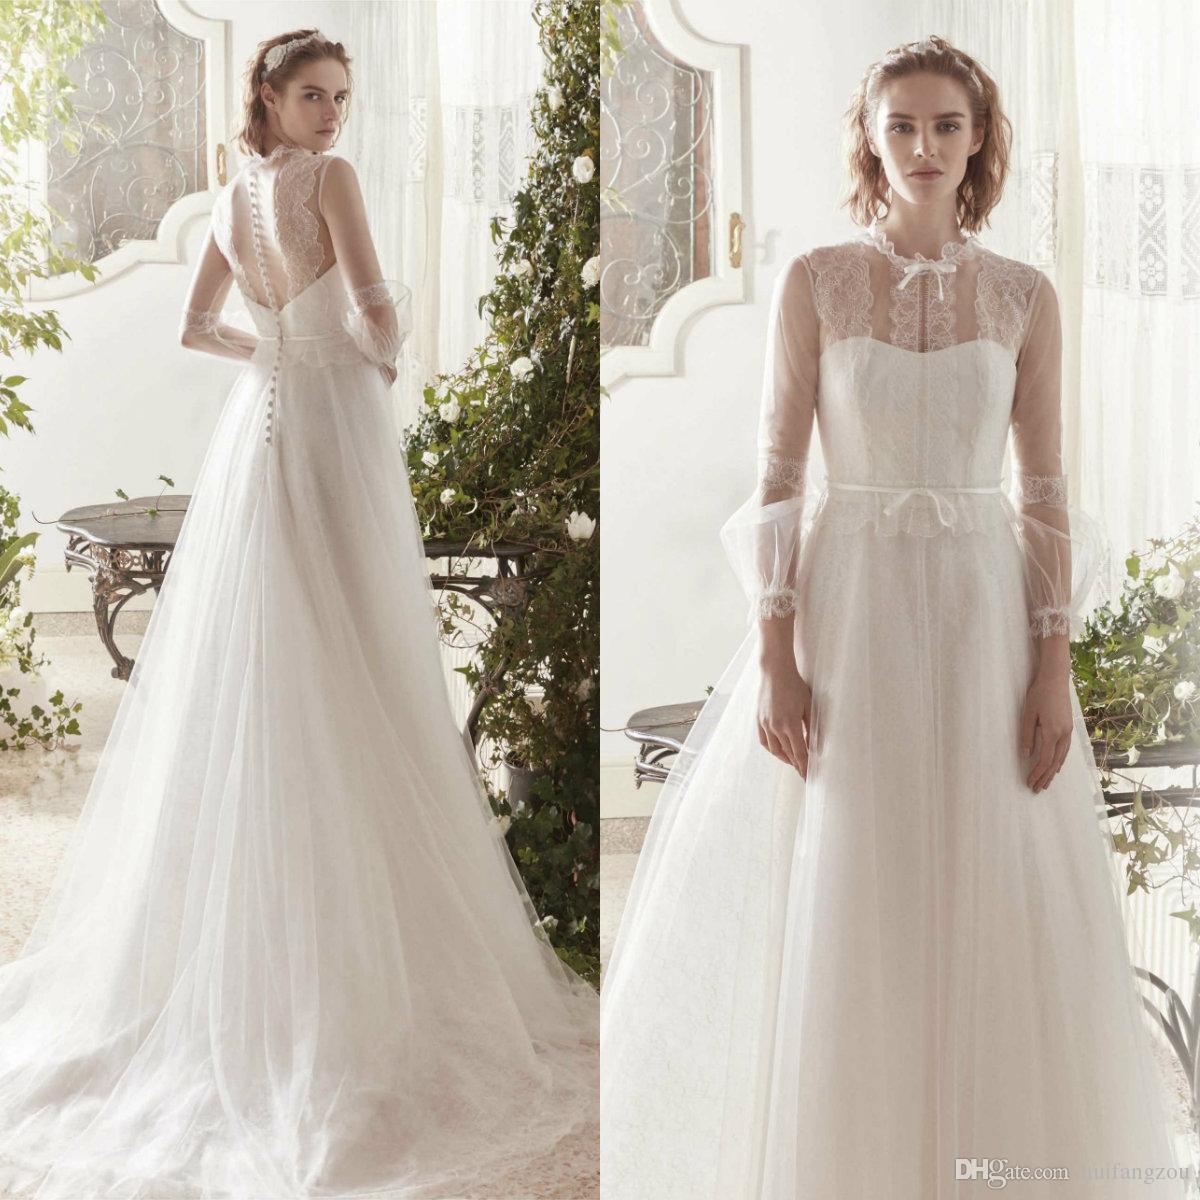 Simple Wedding Dresses with Button